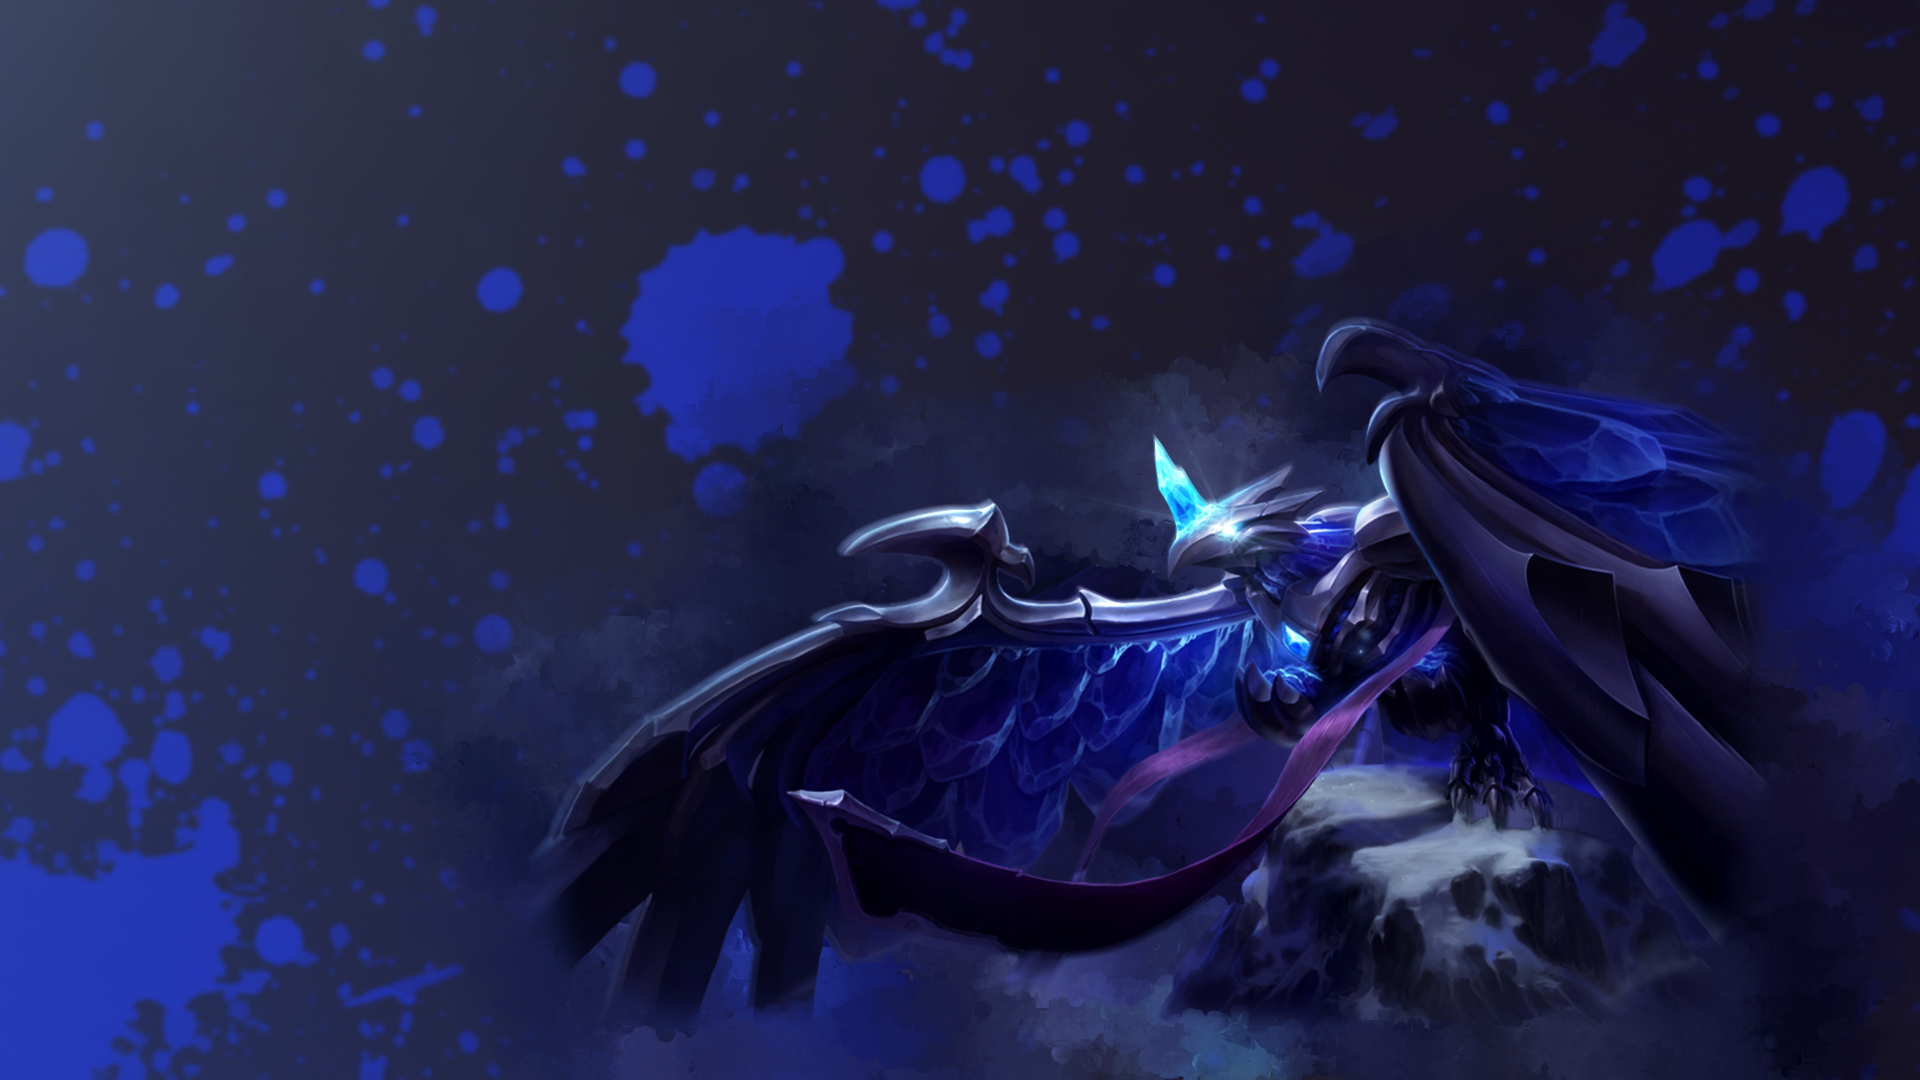 blackfrost anivia ingame - photo #16